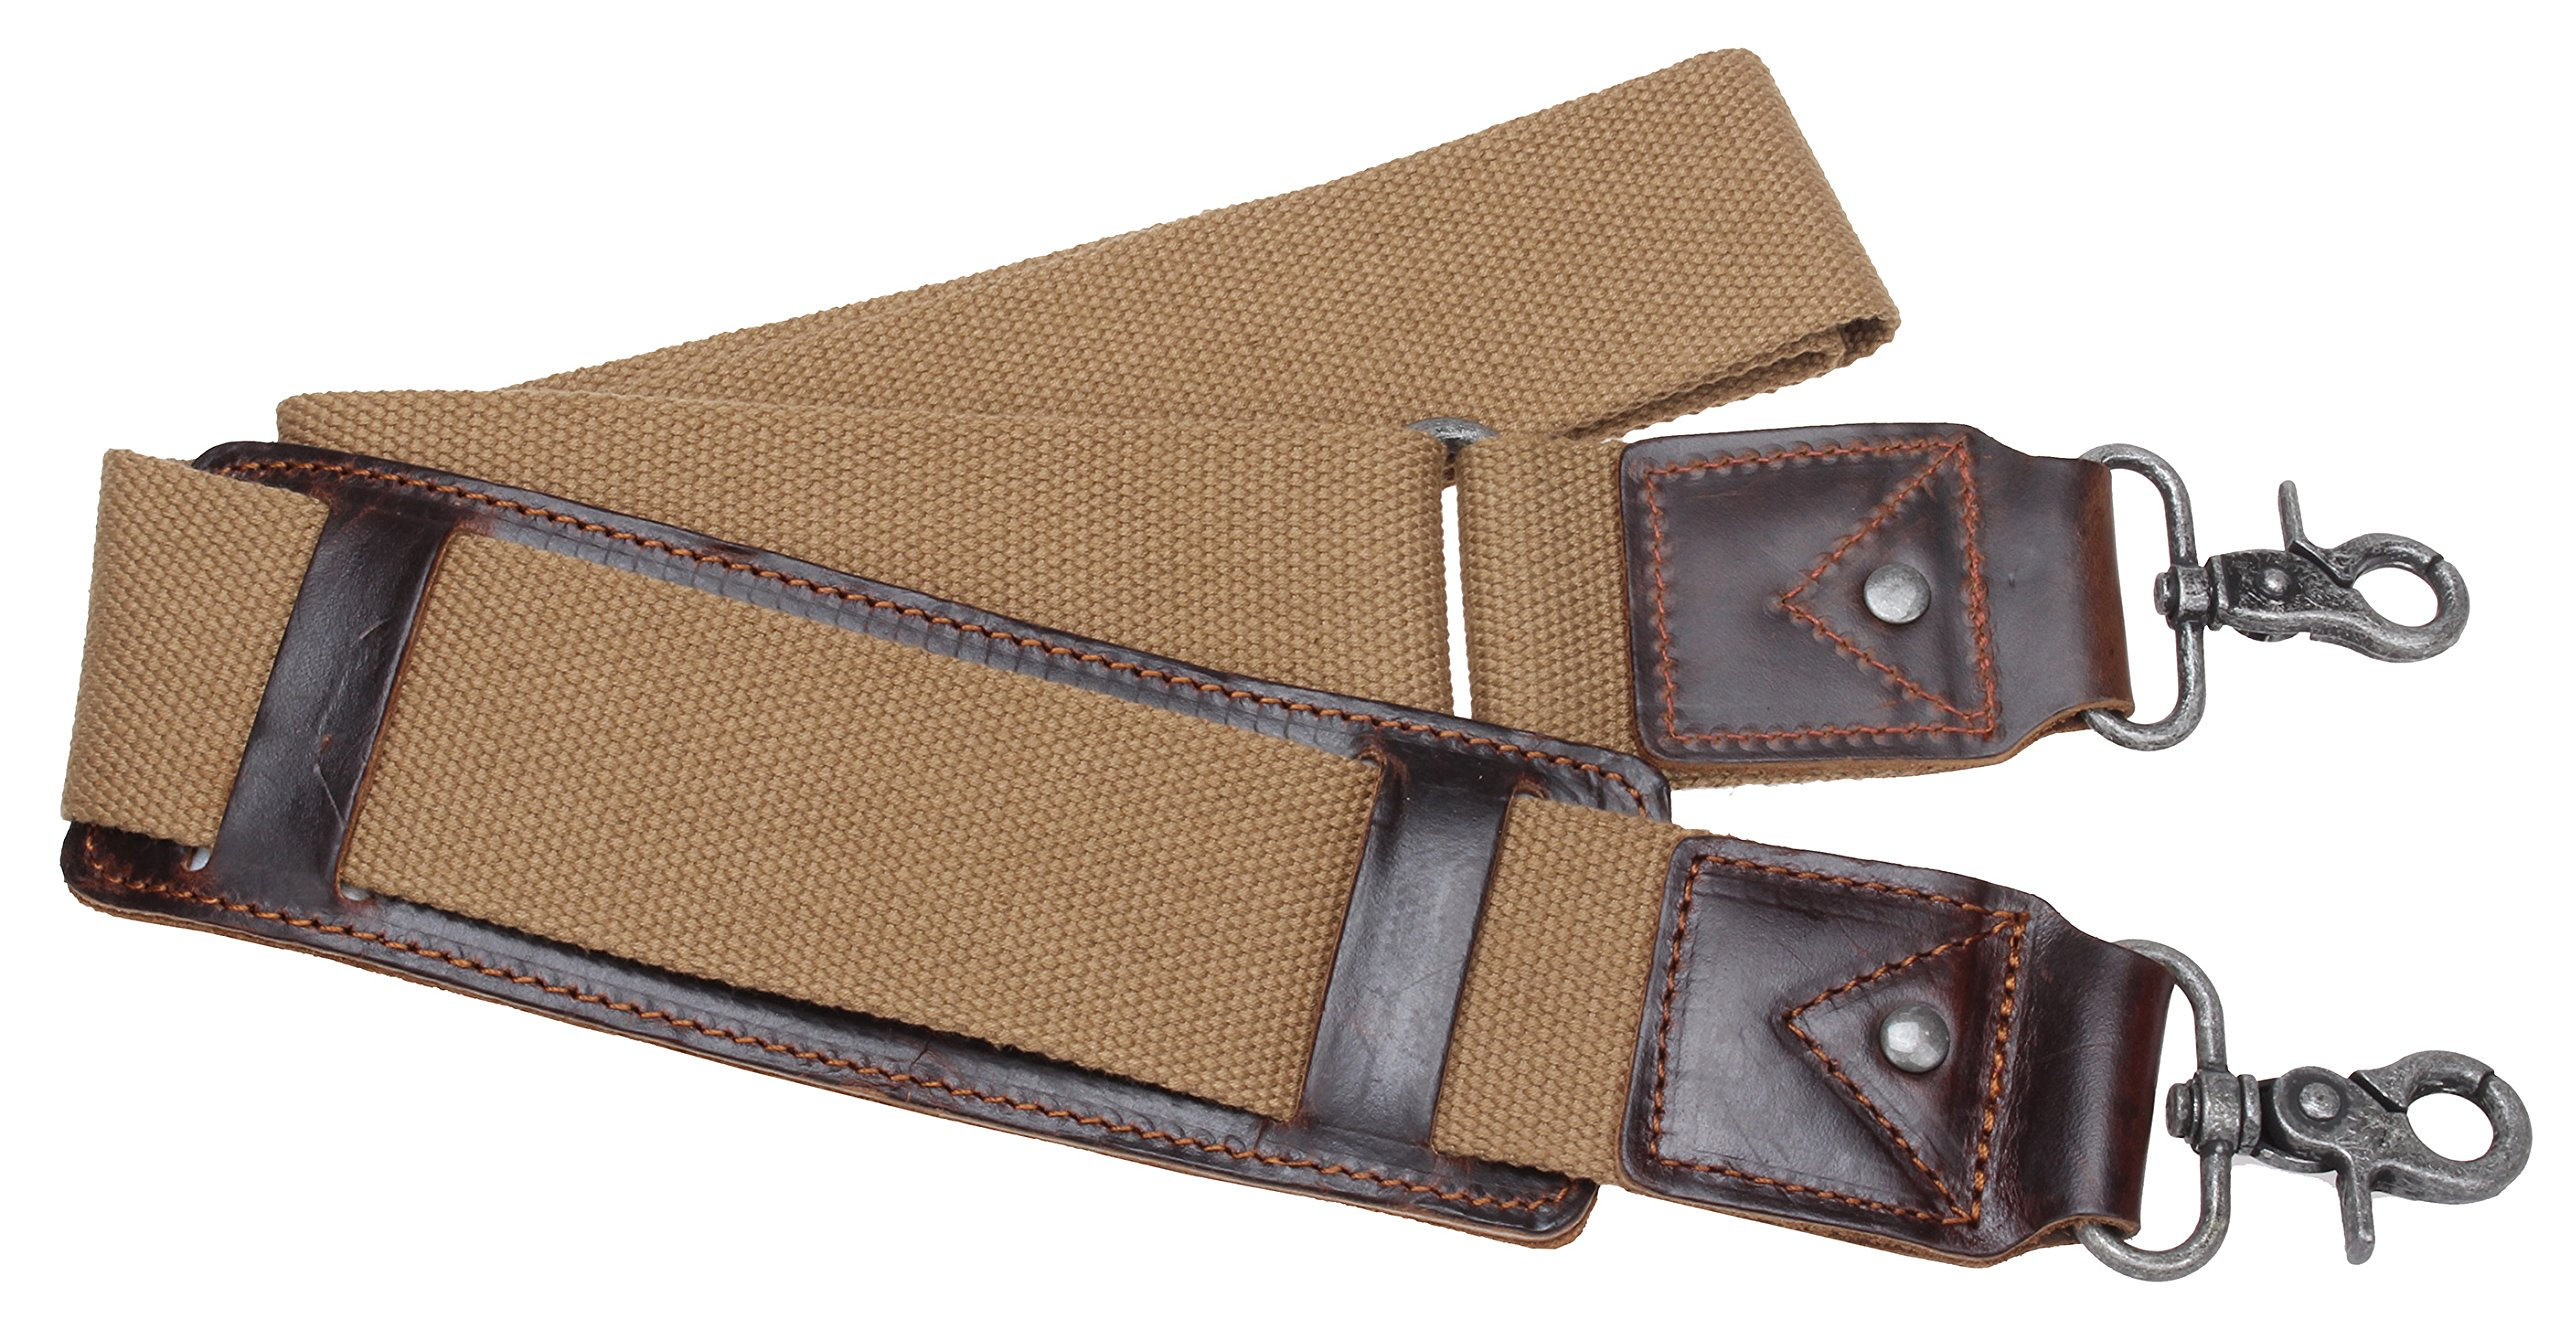 Iblue Replacement Luggage Shoulder Strap Canvas Adjustable Padded Travel Duffle Bag Straps # J2 (khaki)